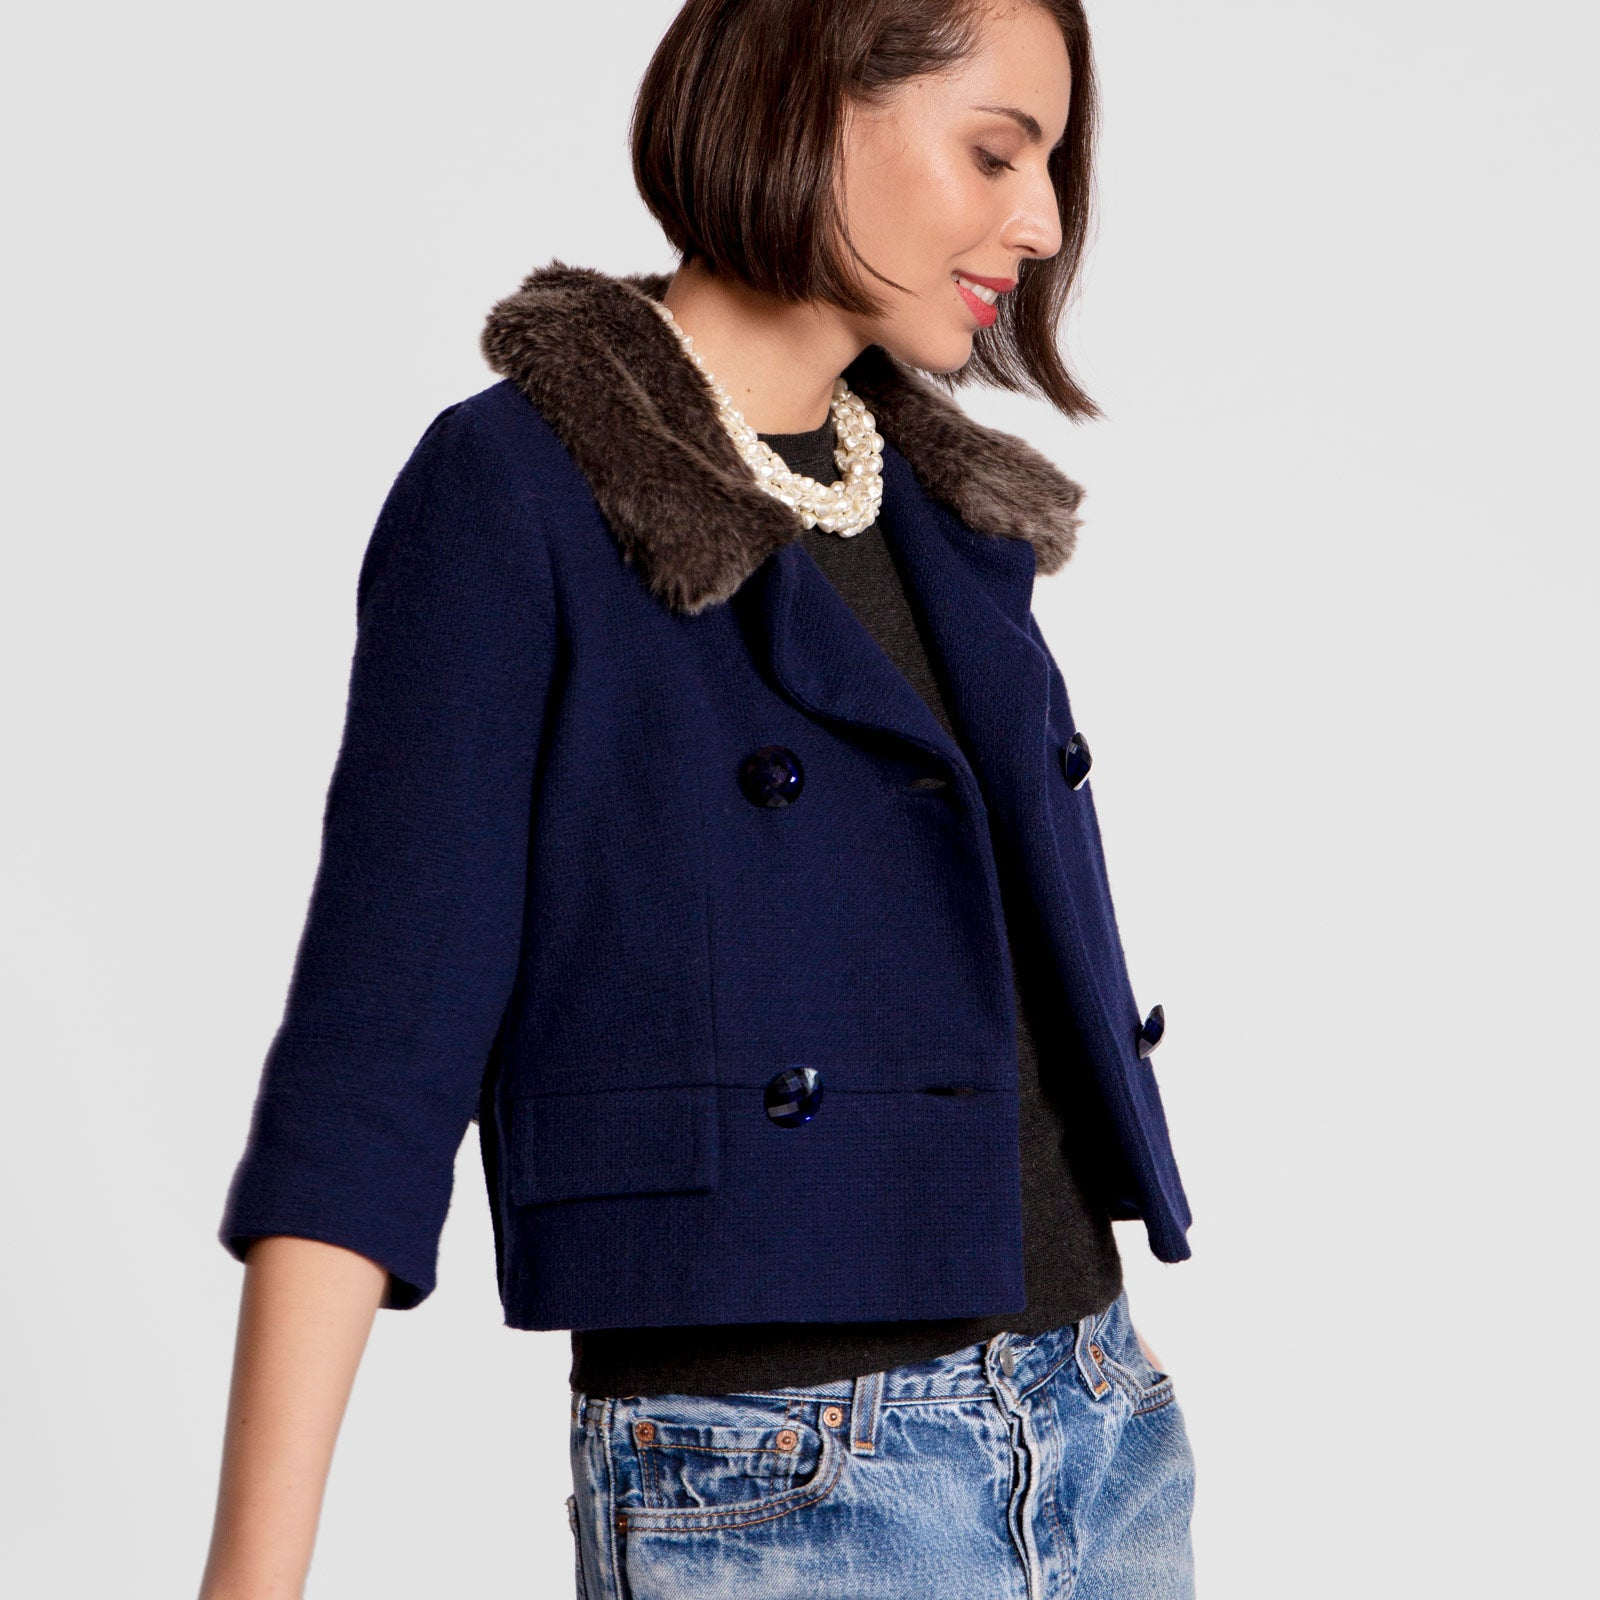 Gigi Lady Jacket Faux Fur Navy